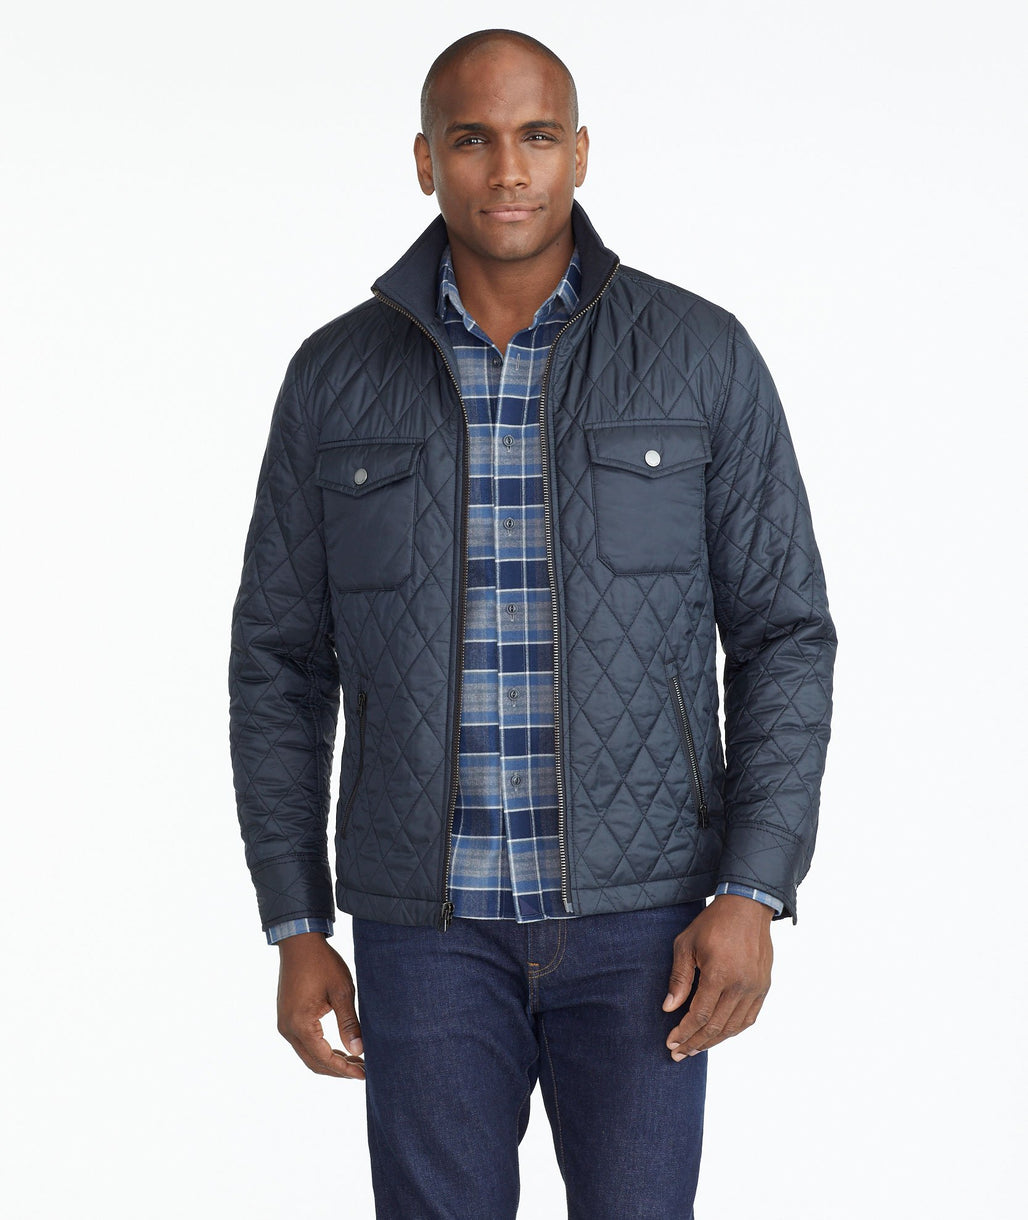 Model wearing a Dark Grey Quilted City Jacket